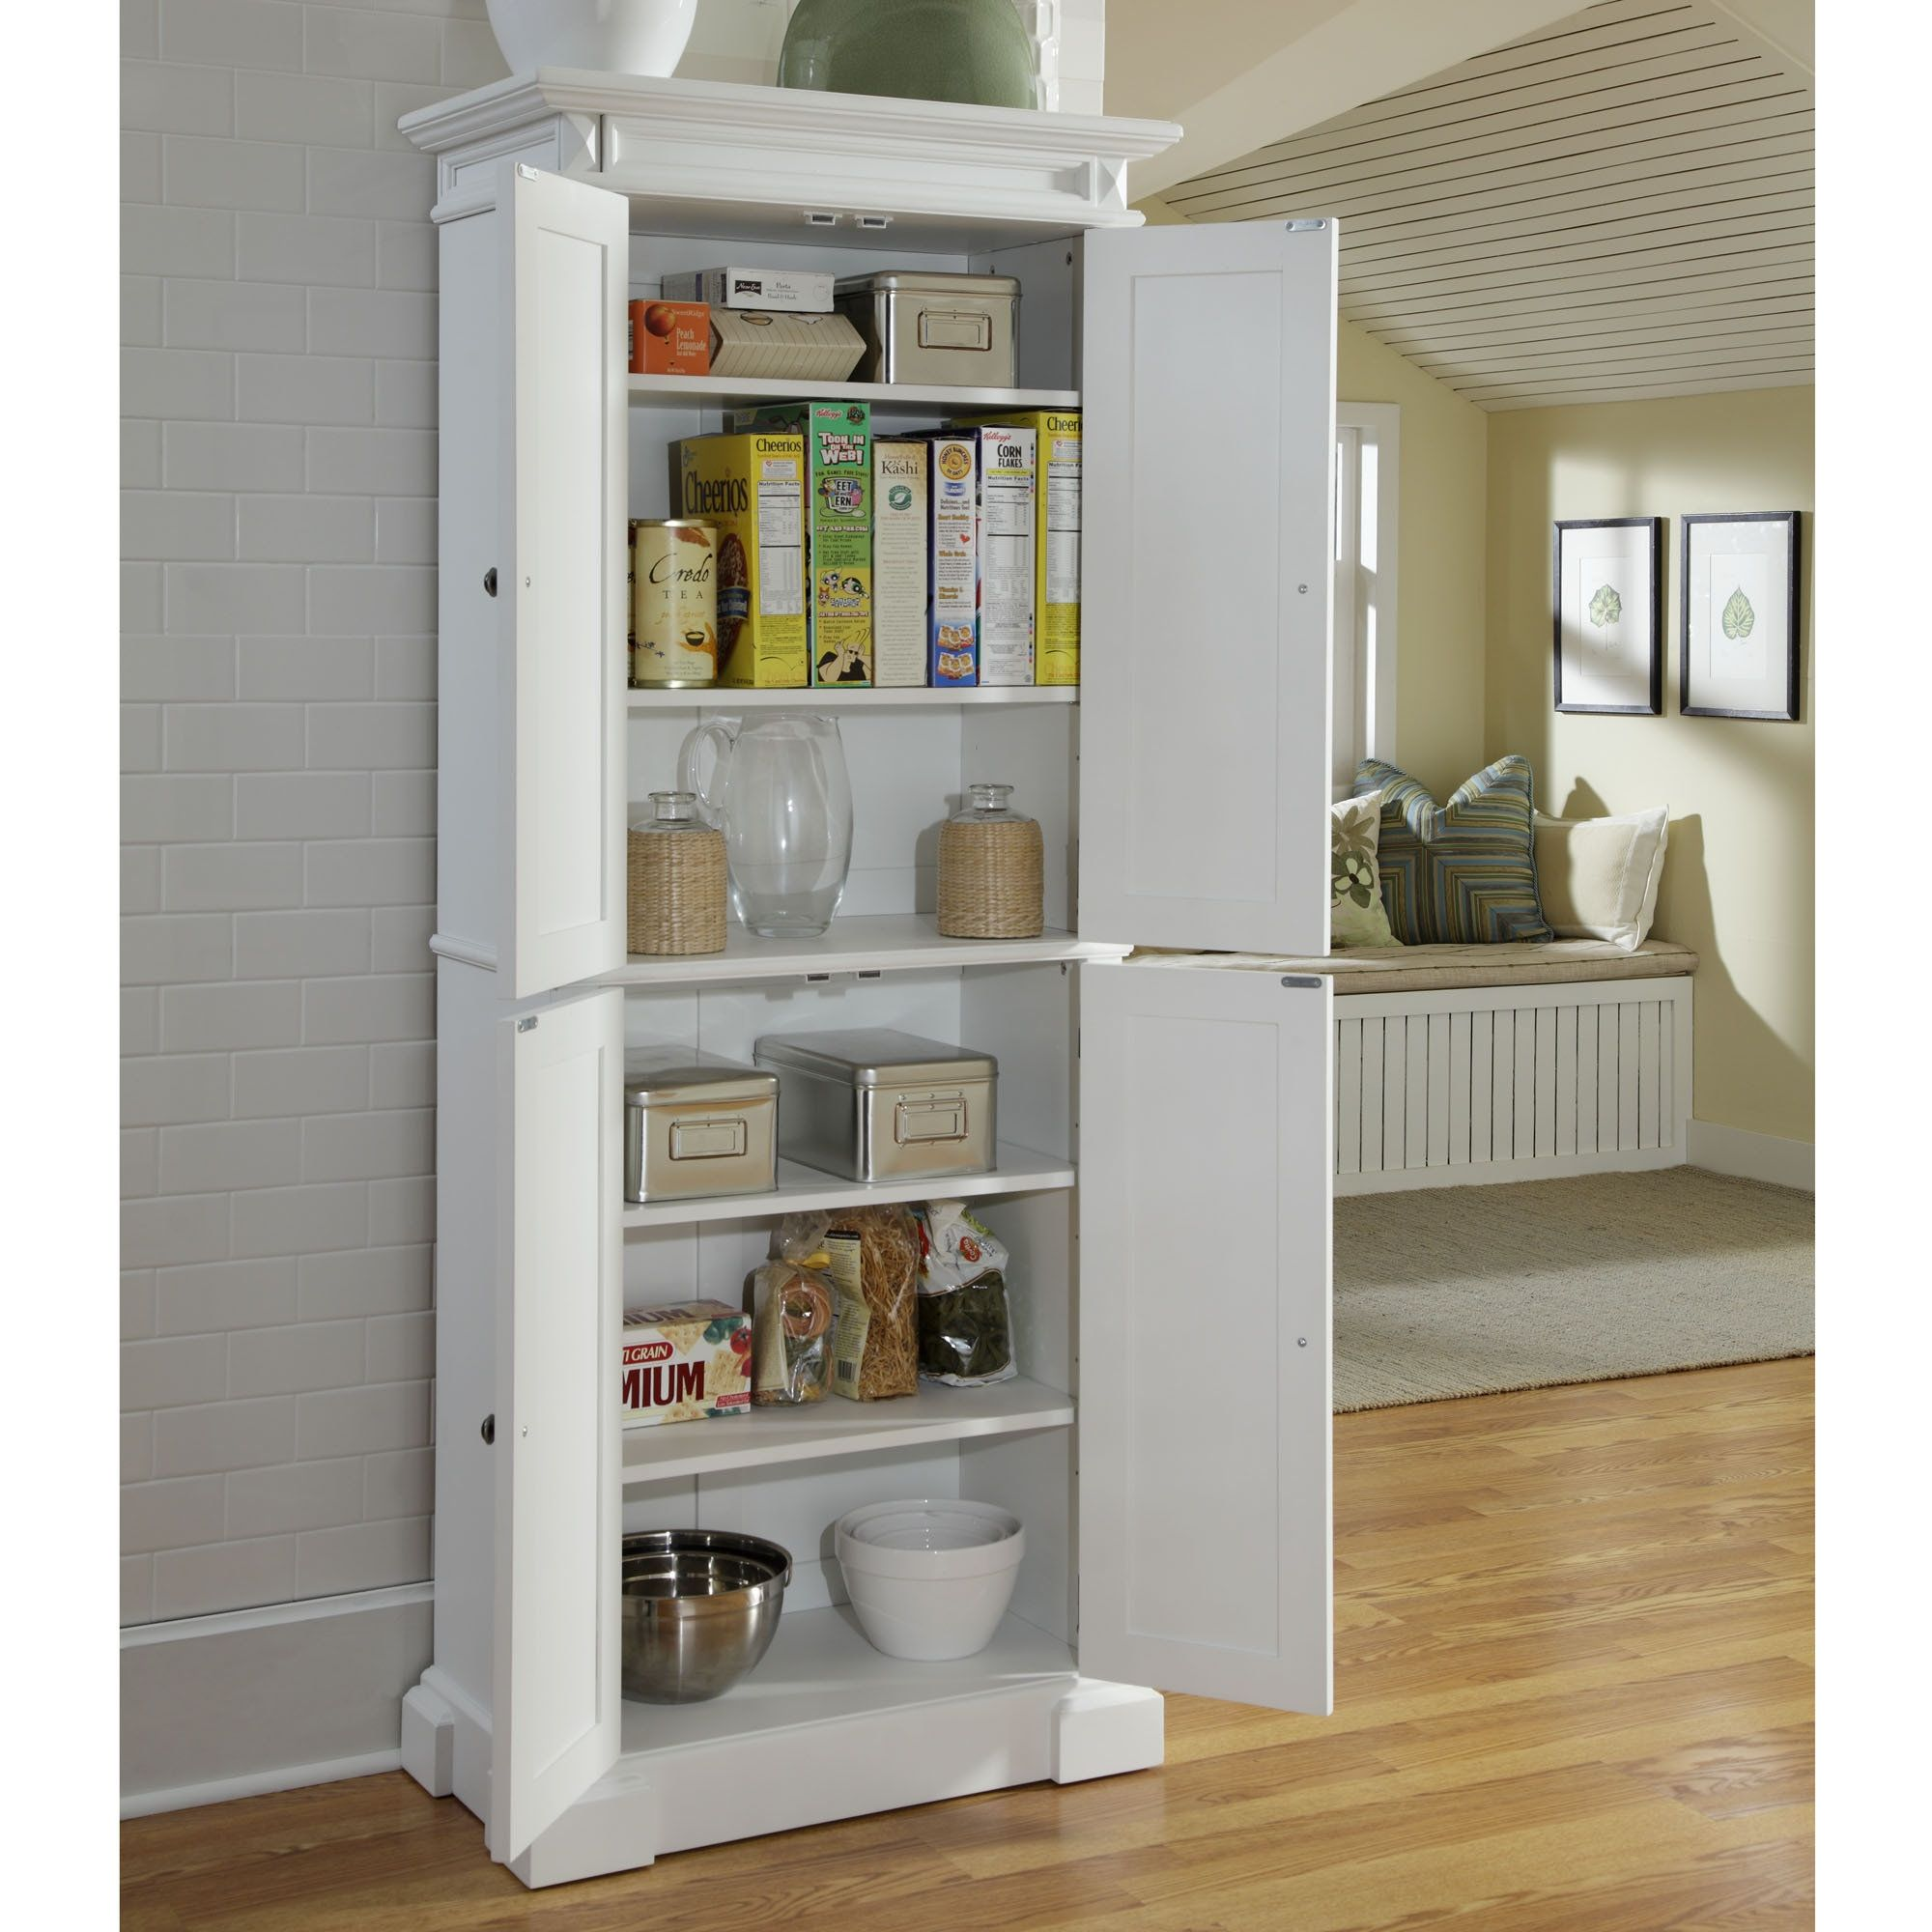 Storage Cabinet For Kitchen Pantry  Httpdivulgamaisweb Magnificent Kitchen Pantry Storage Cabinet Review